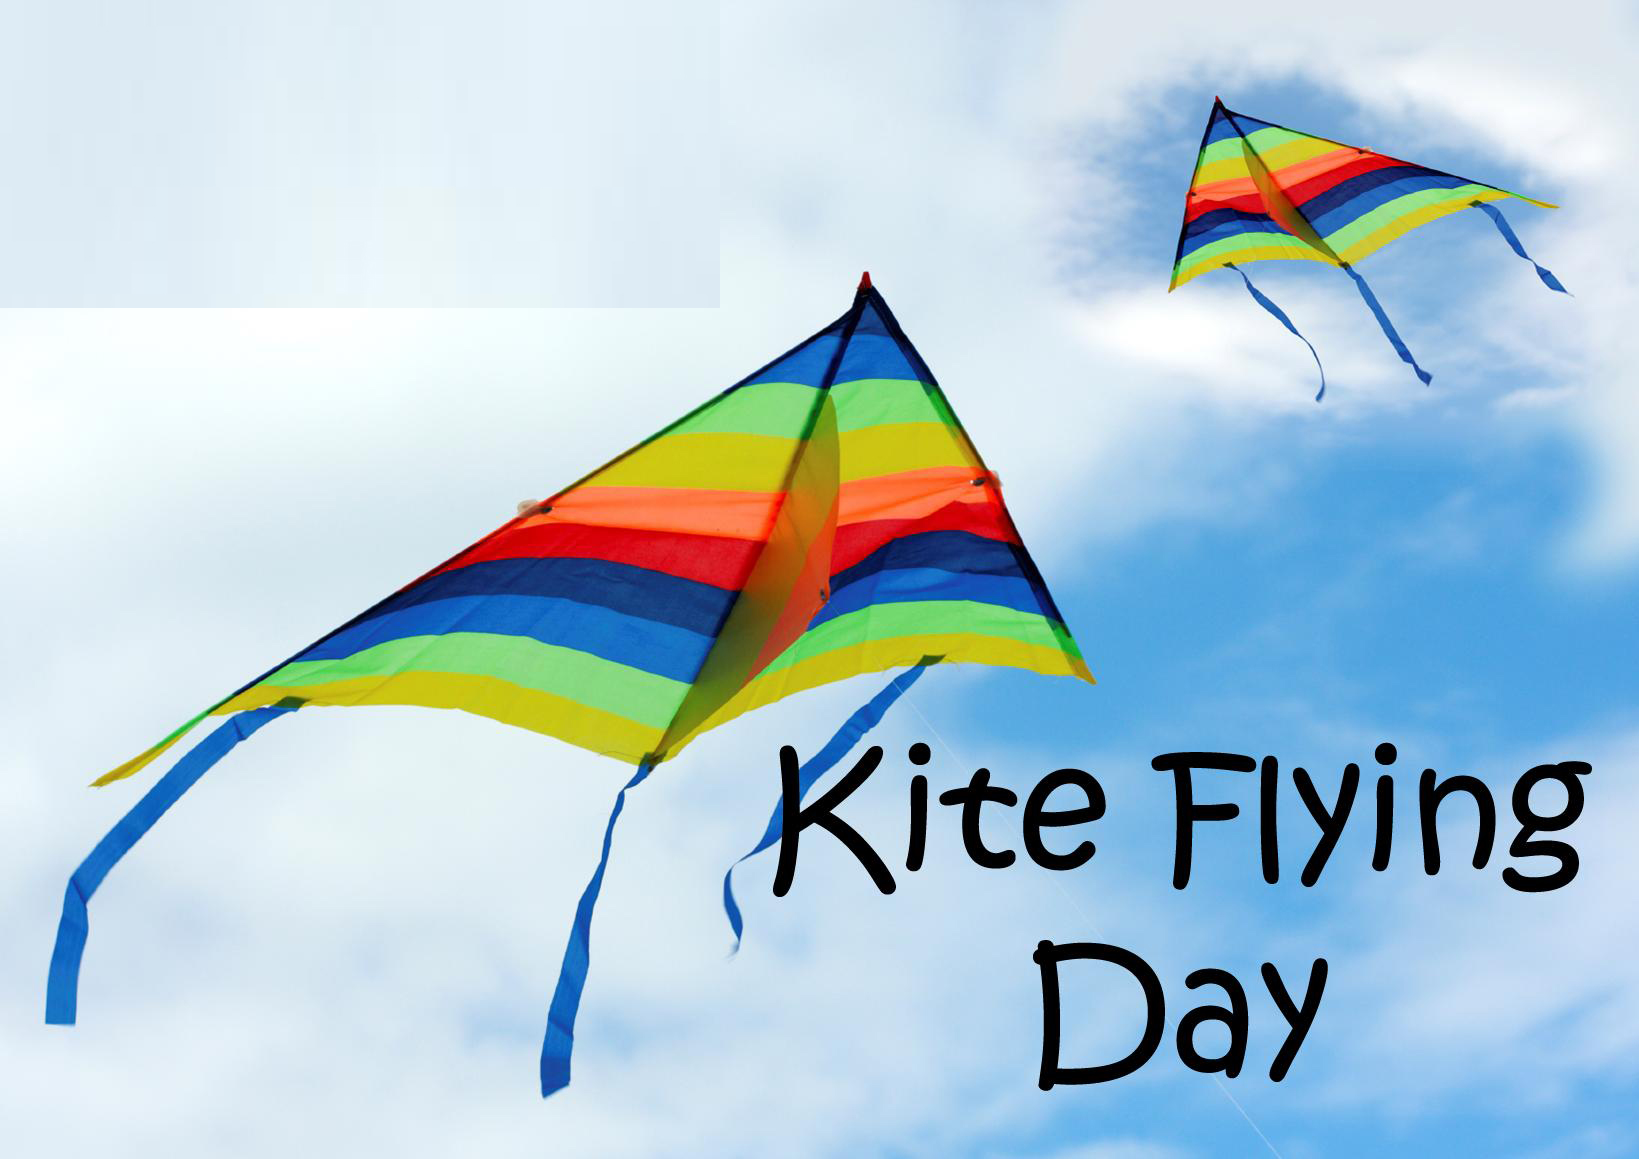 India Kites flying day Wallpapers 2014 2014 India Kites flying day 1639x1159